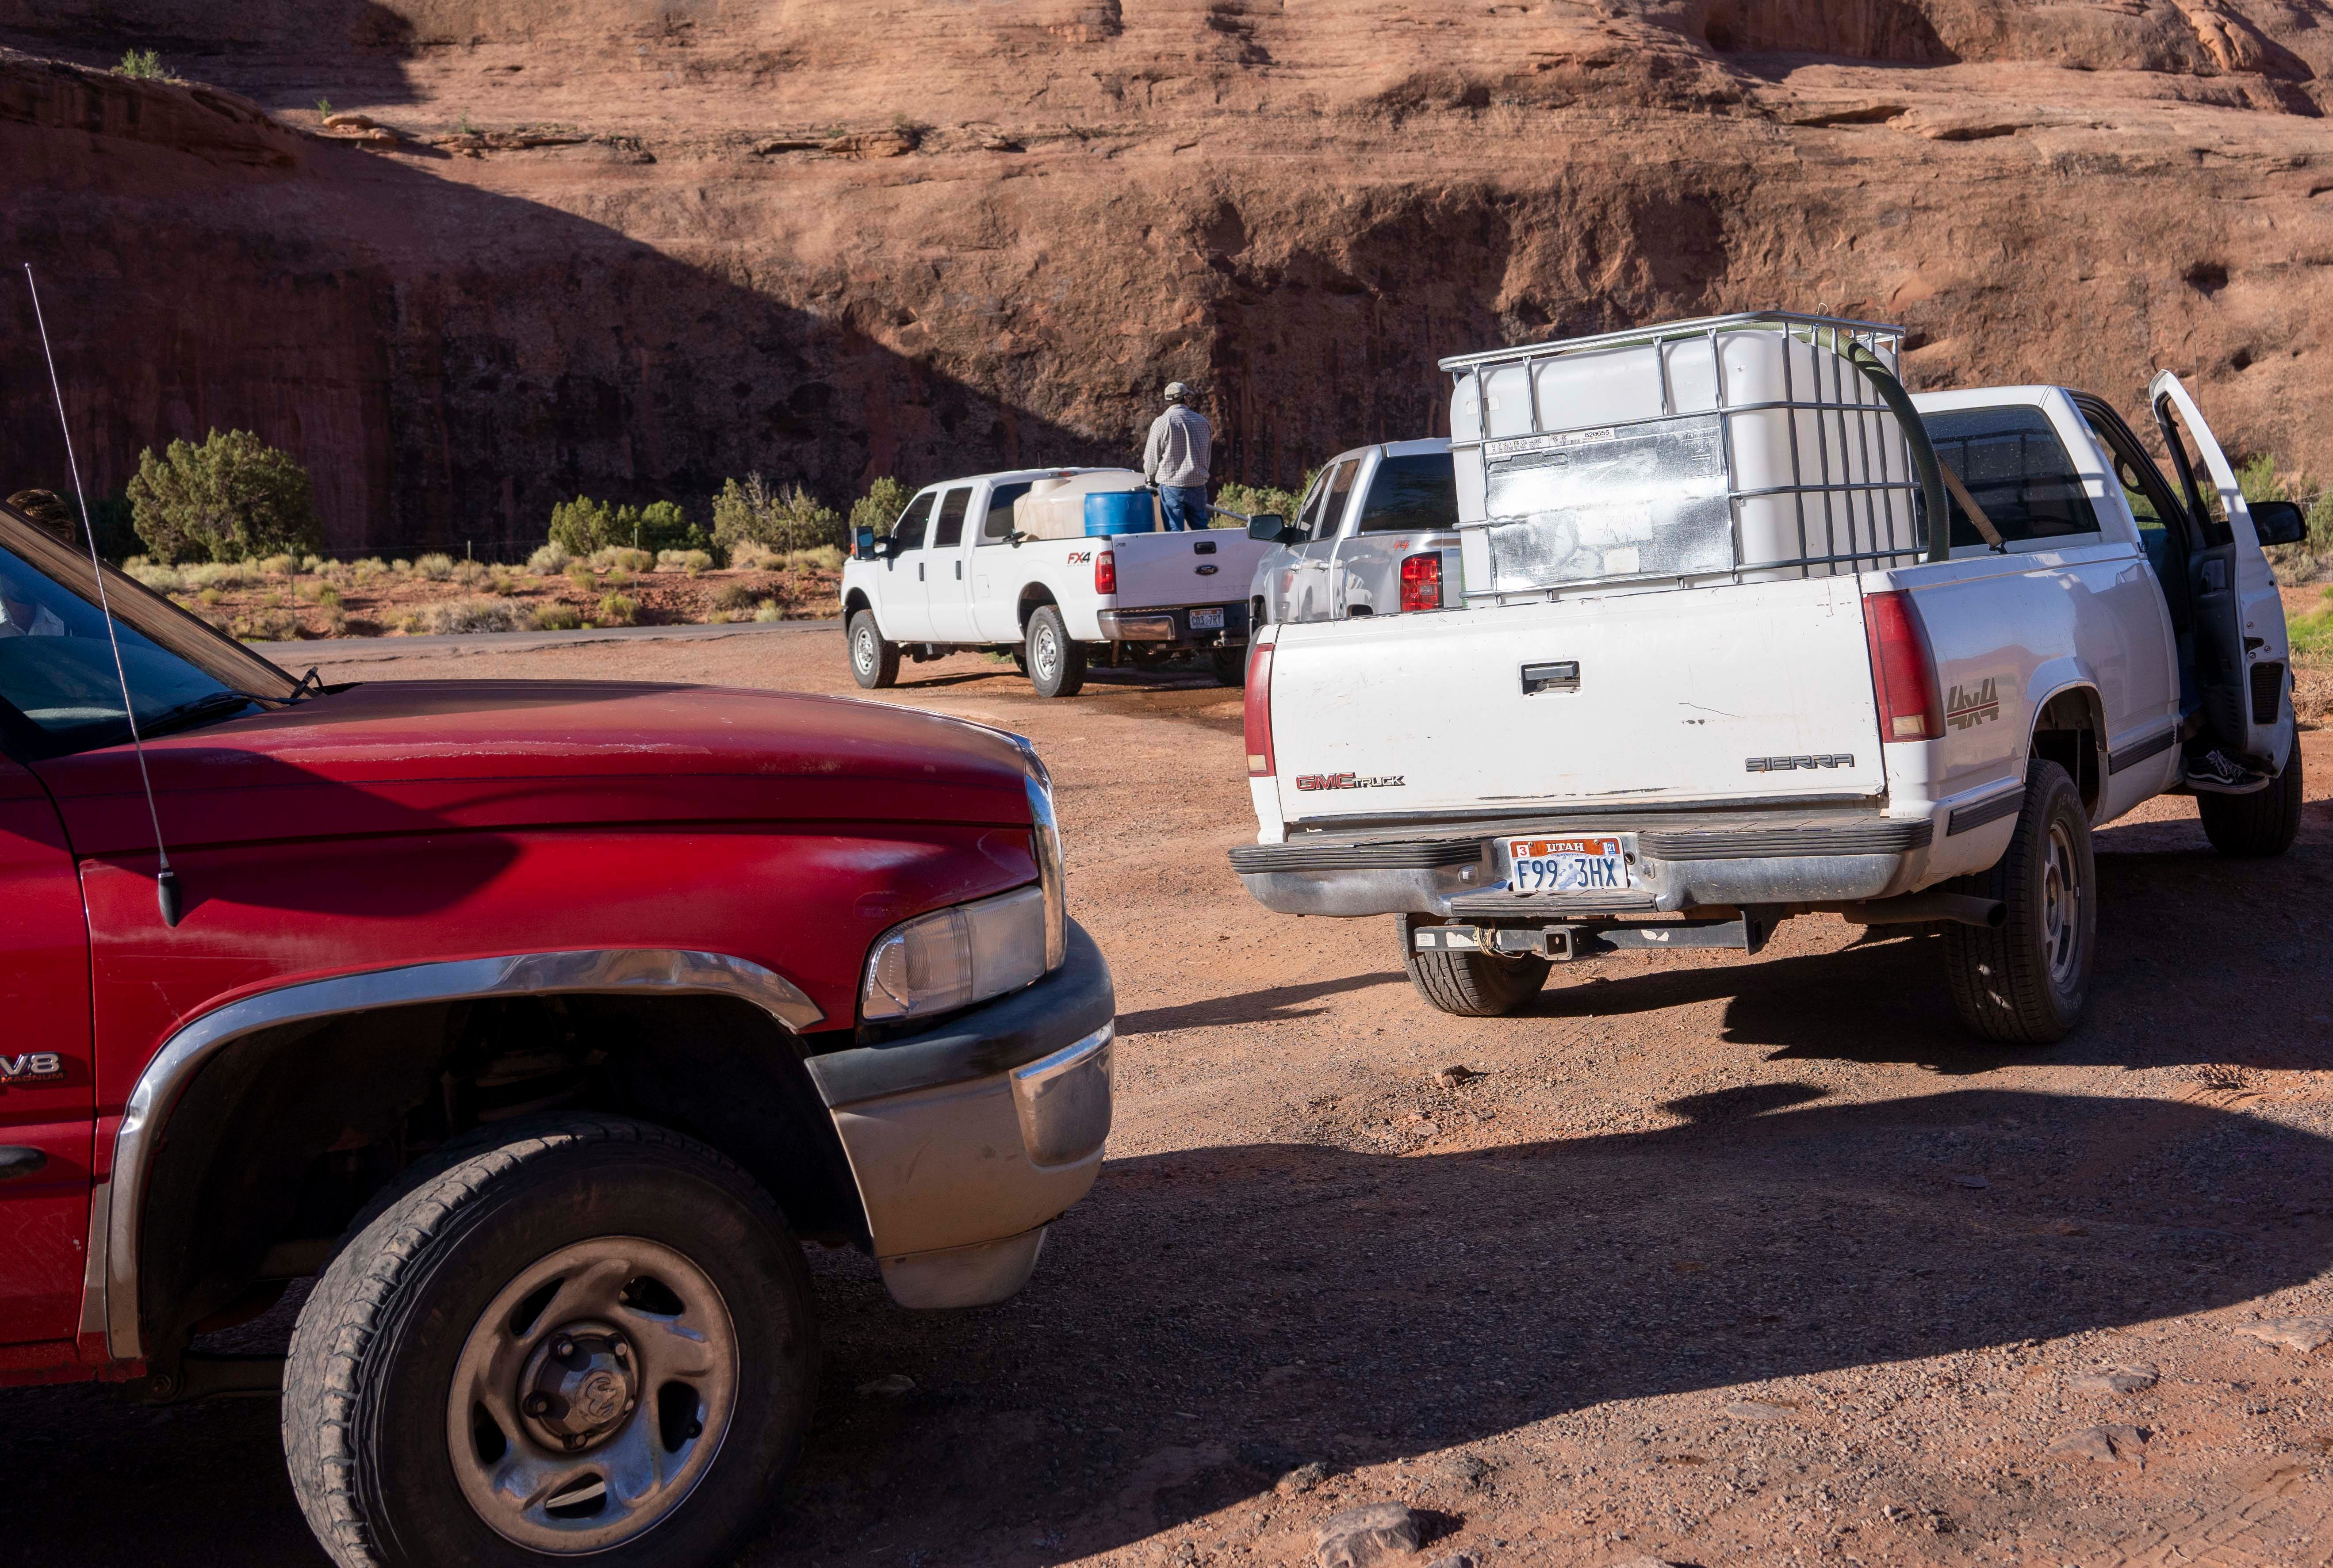 People line up for water at a spigot in the community of Goulding, Utah, waiting for about an hour. Many families in this part of the Navajo Nation live in homes without running water.